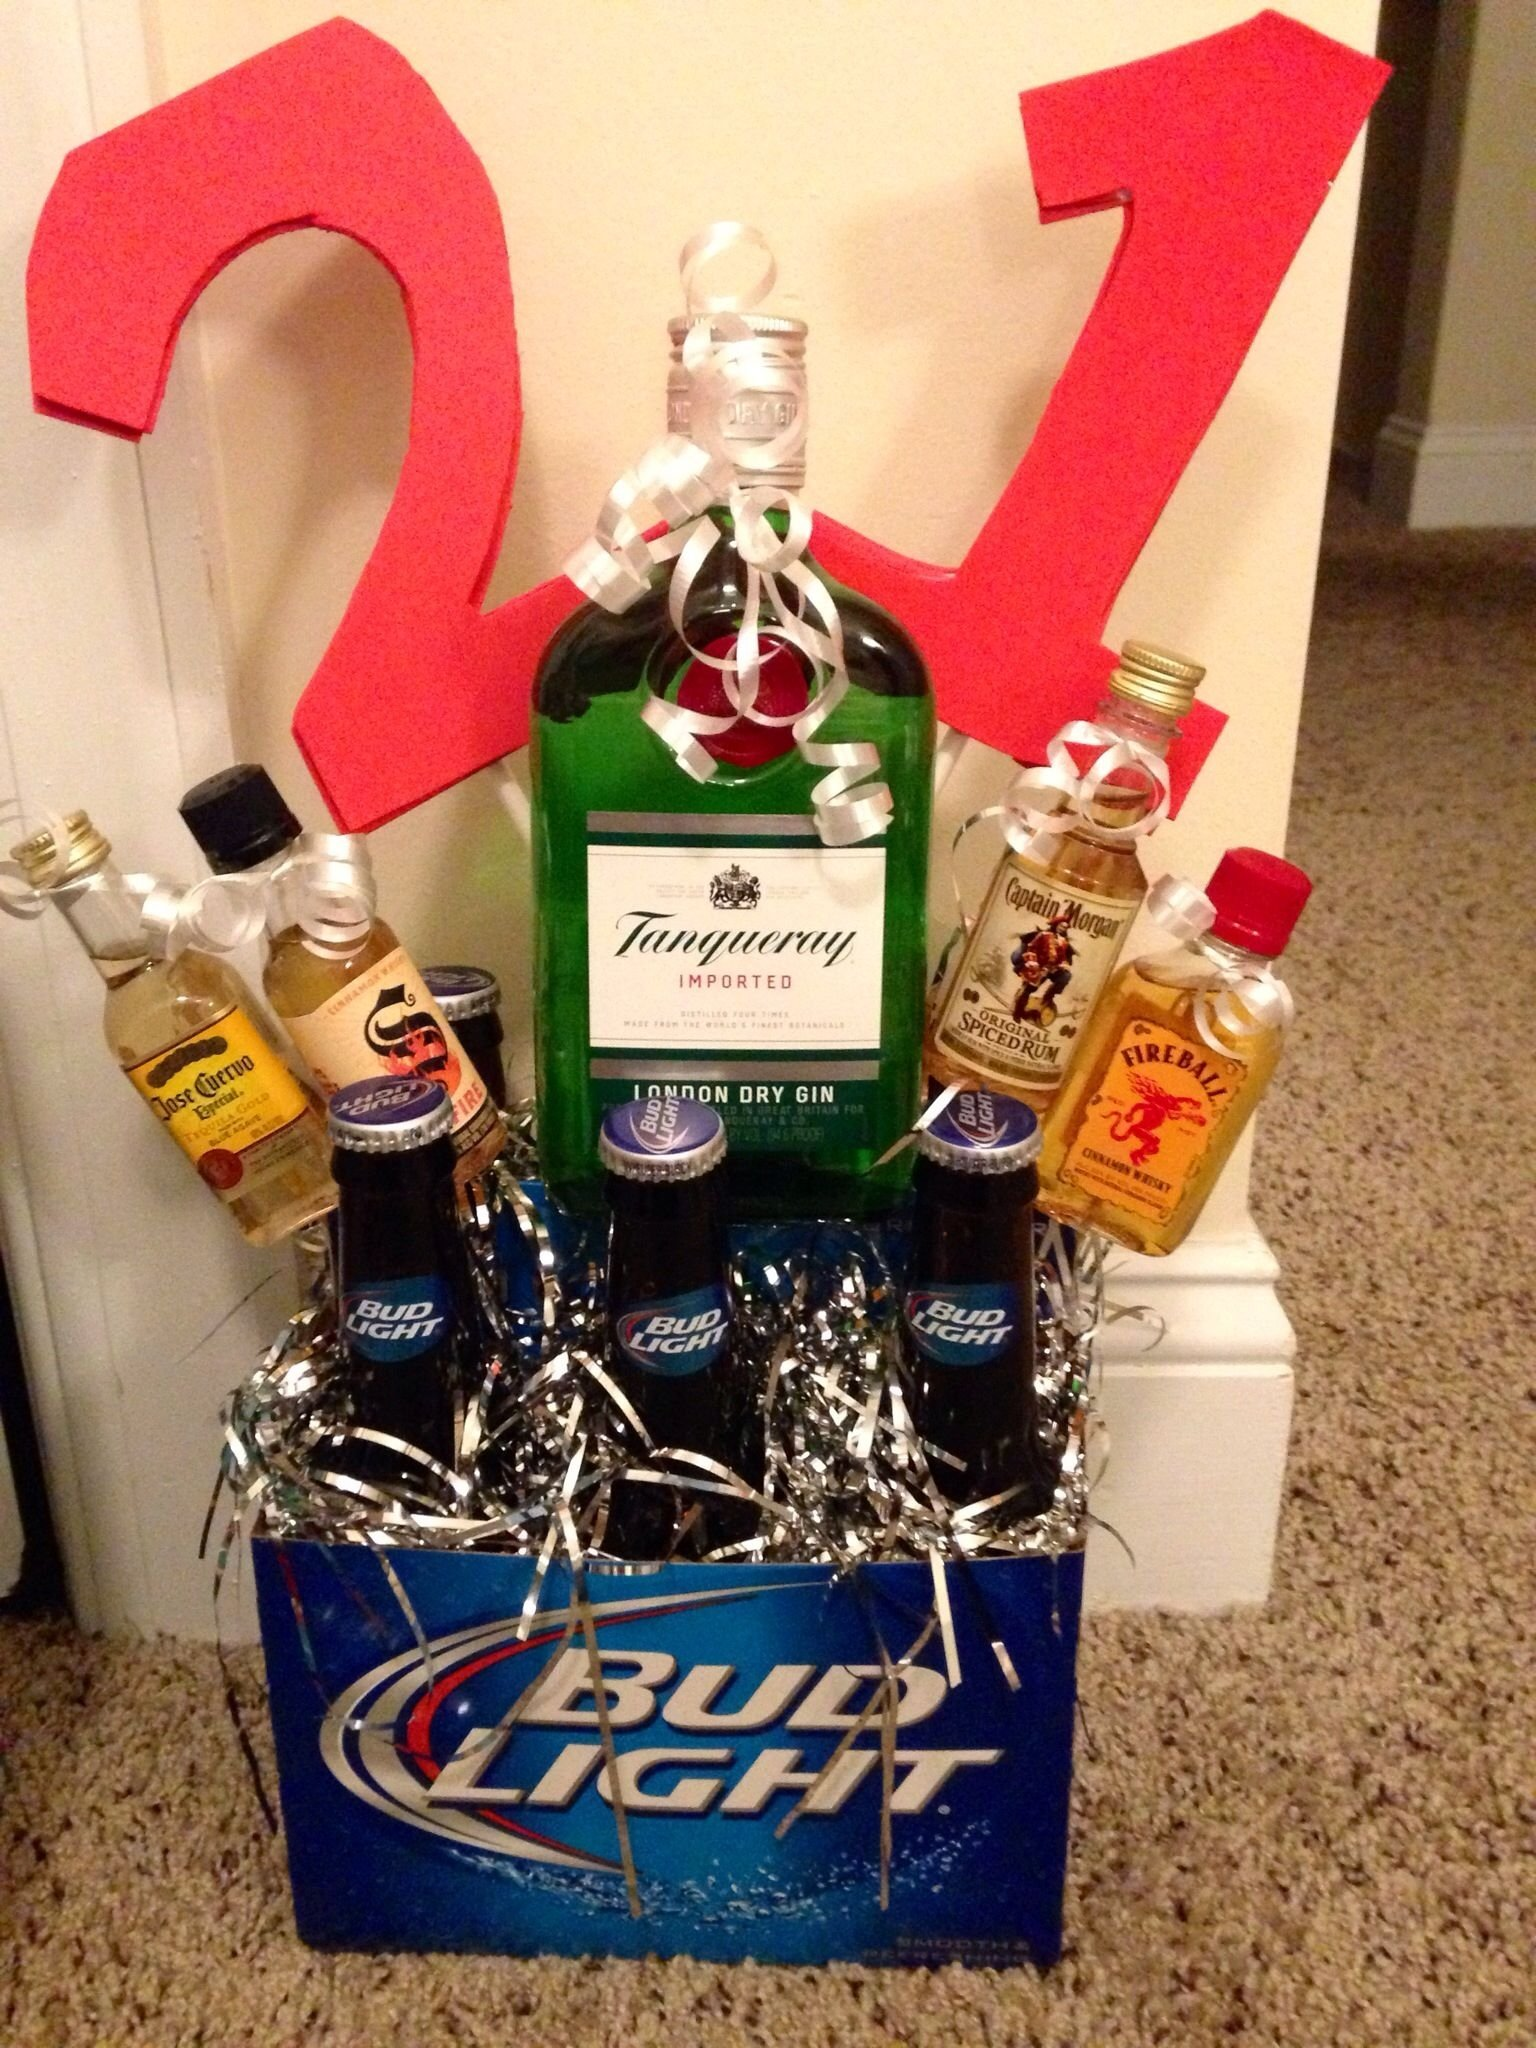 21st birthday idea for a guy | boys. | pinterest | 21st birthday